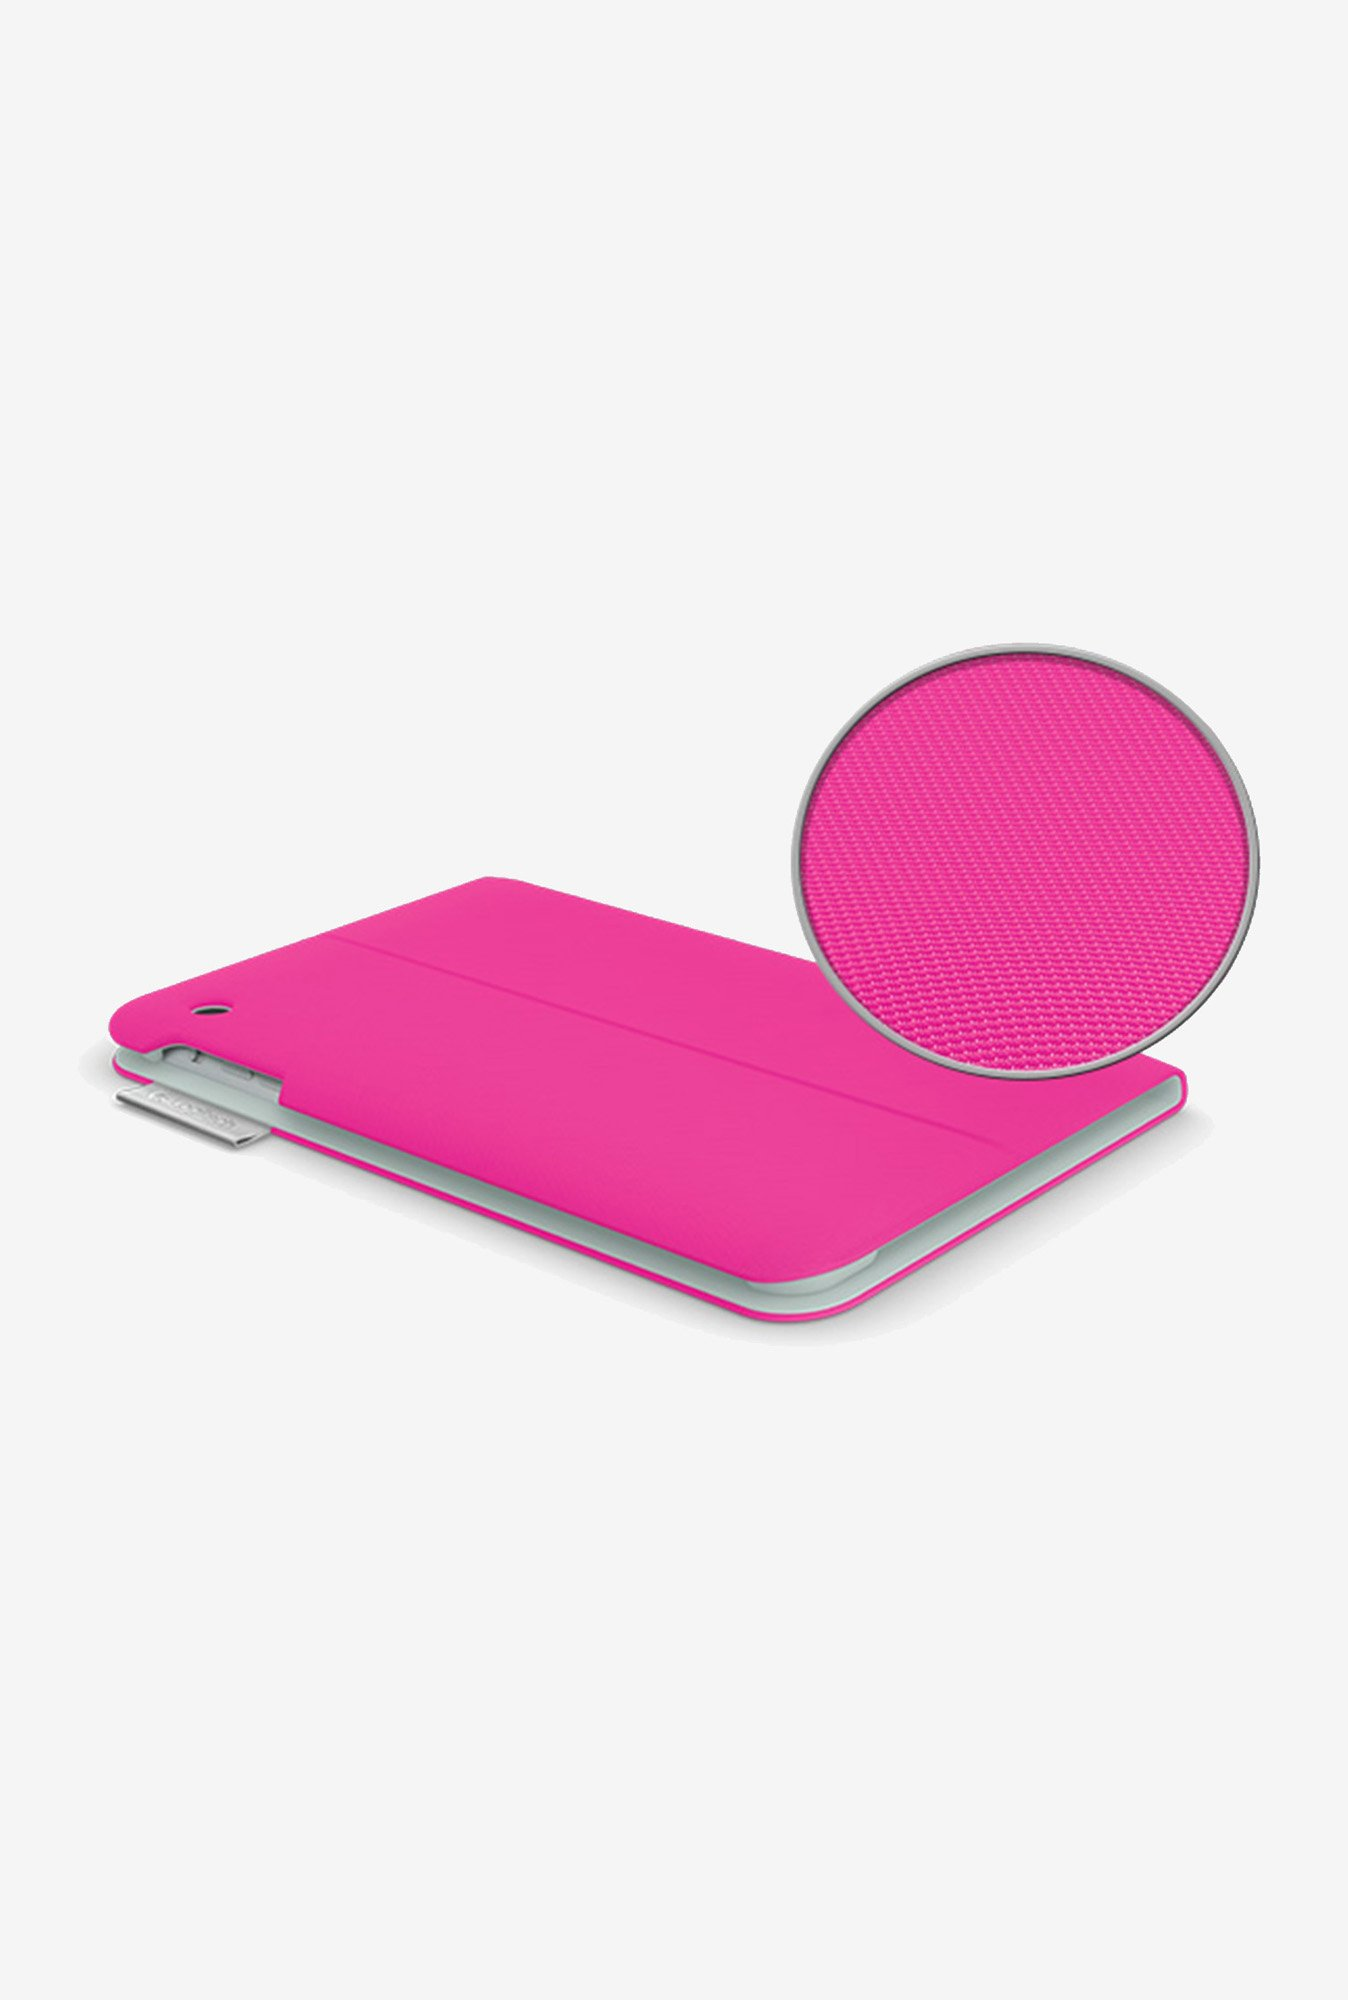 Logitech Folio Case for iPad Mini Pink